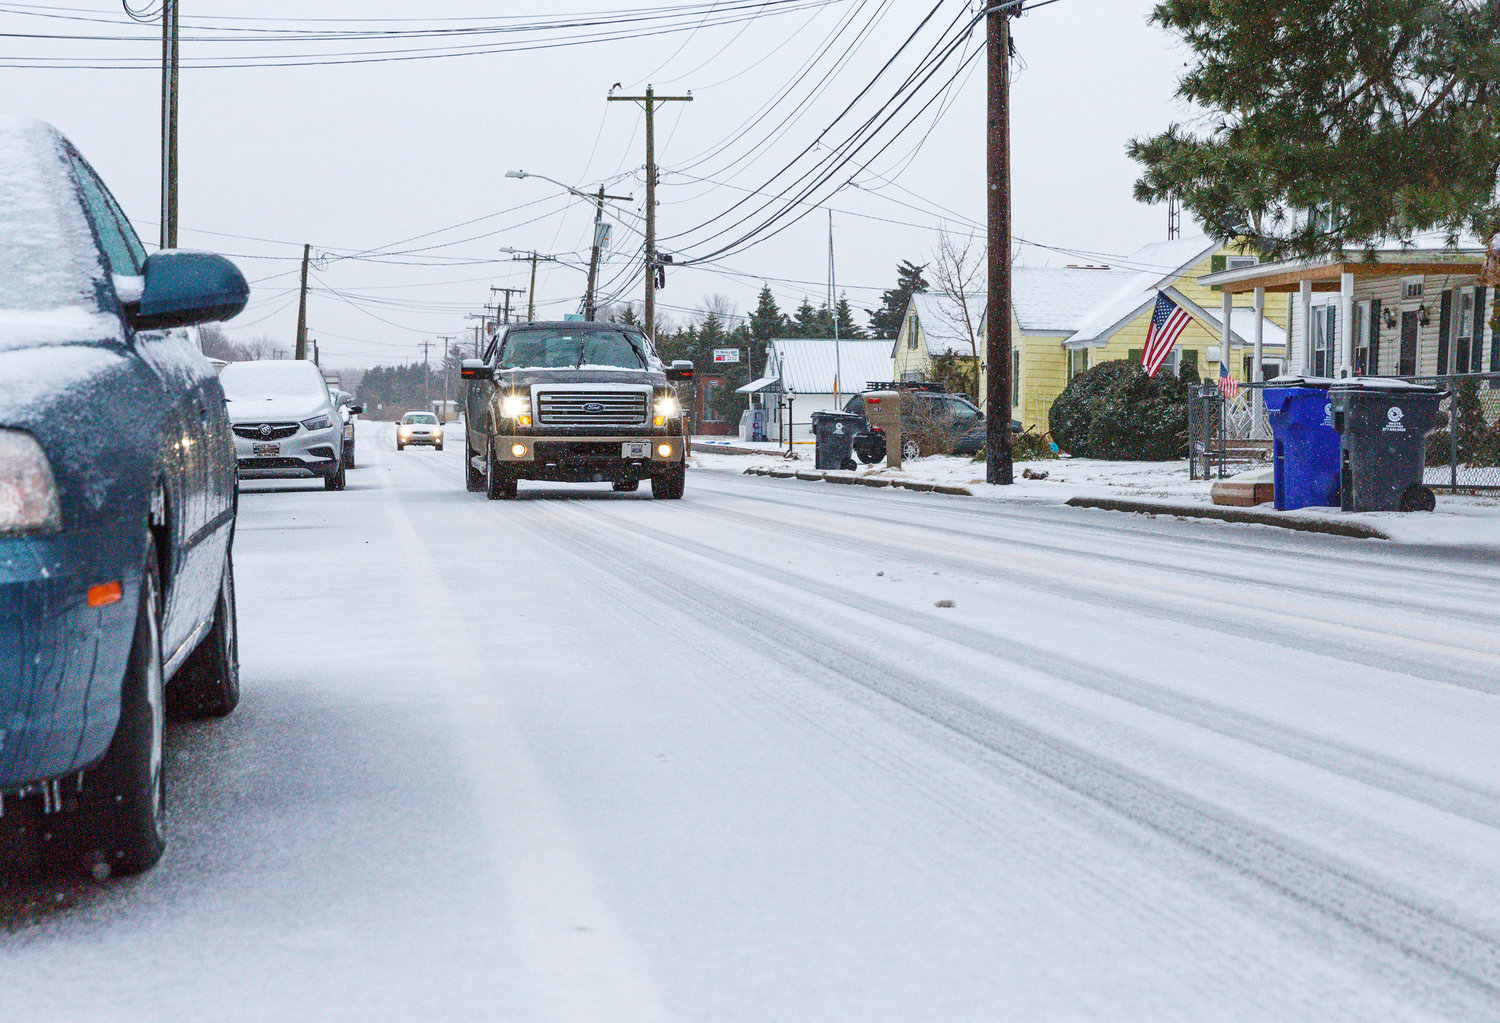 Cars move slowly on Main Street in Little Creek because of icy road conditions on Thursday morning.